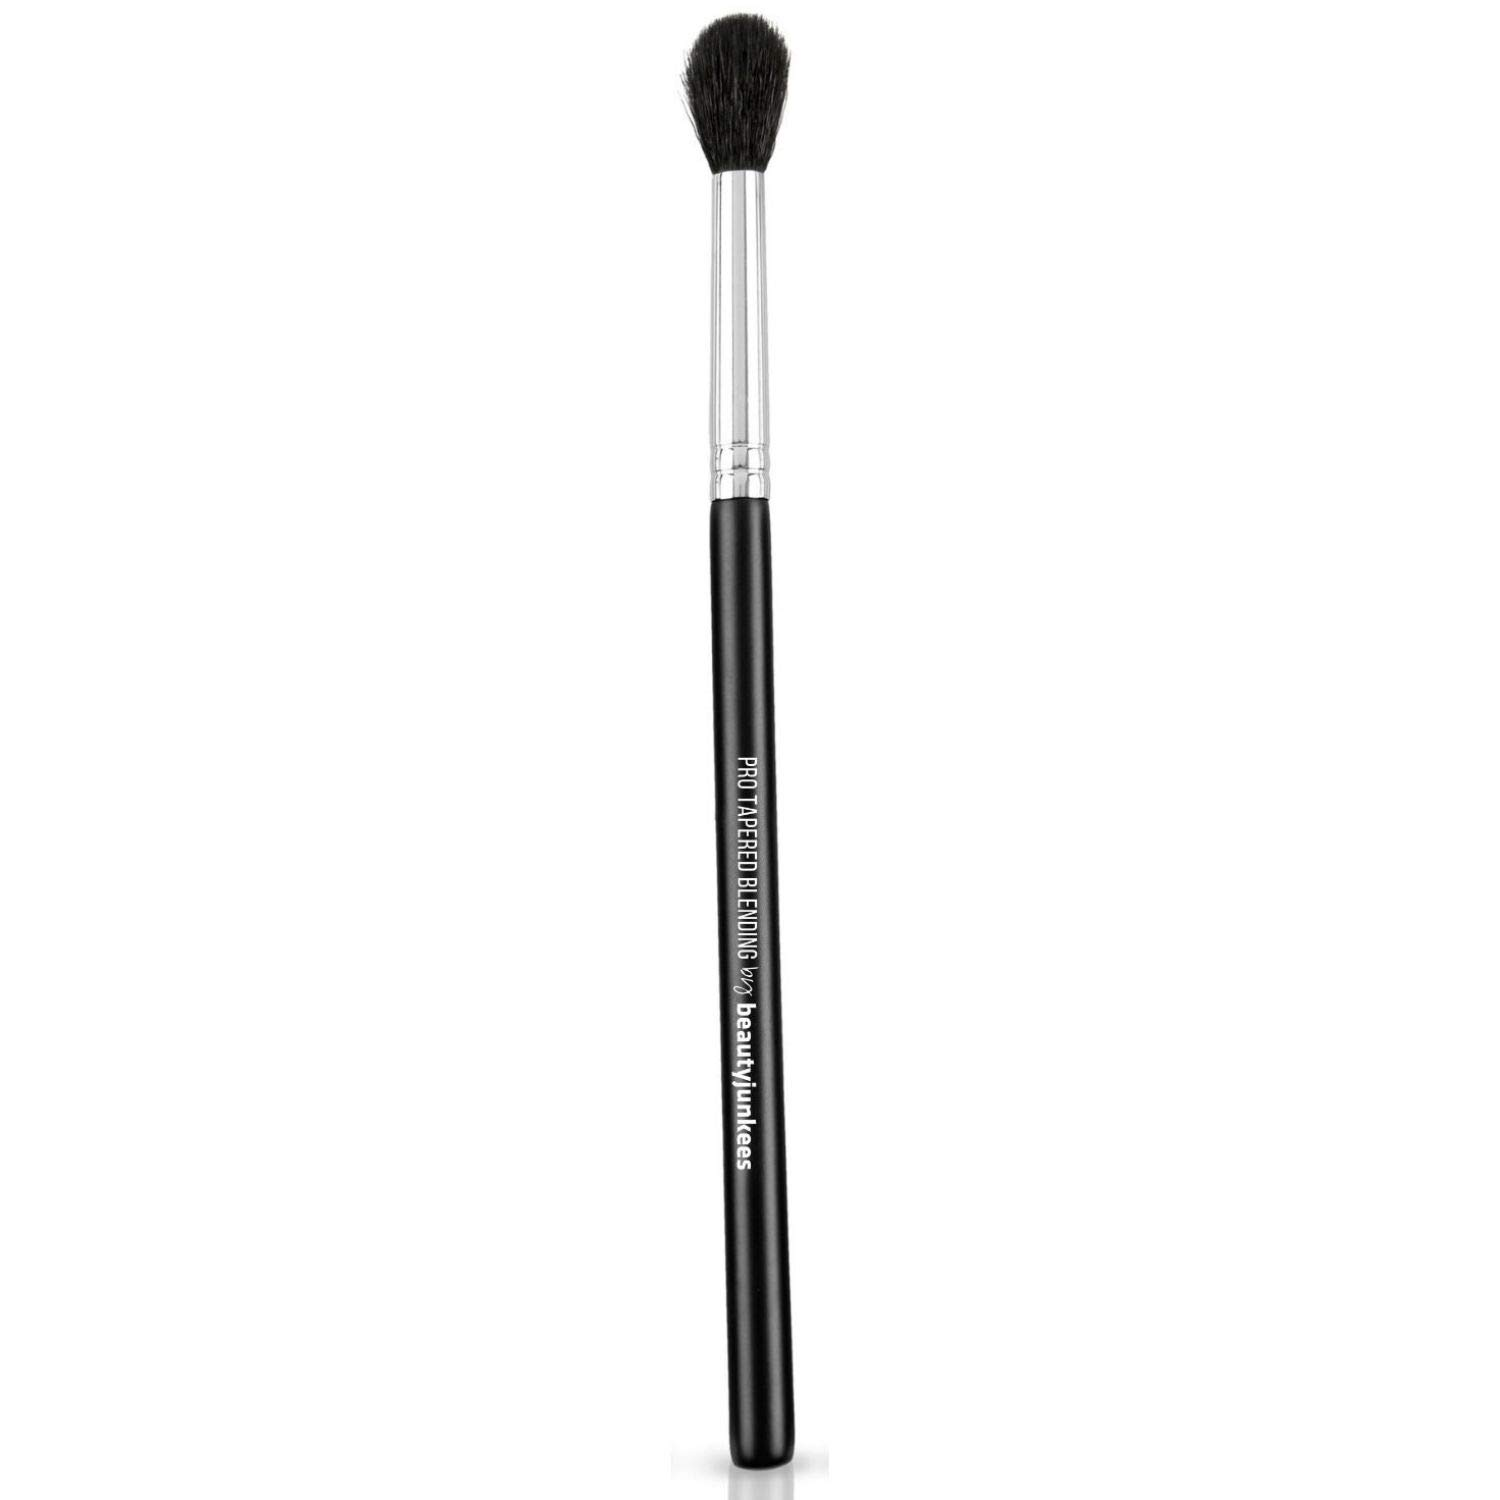 85517a3632ab Tapered Blending Eyeshadow Makeup Brush – Eye Shadow Make Up Brush with  Soft Bristles for a...